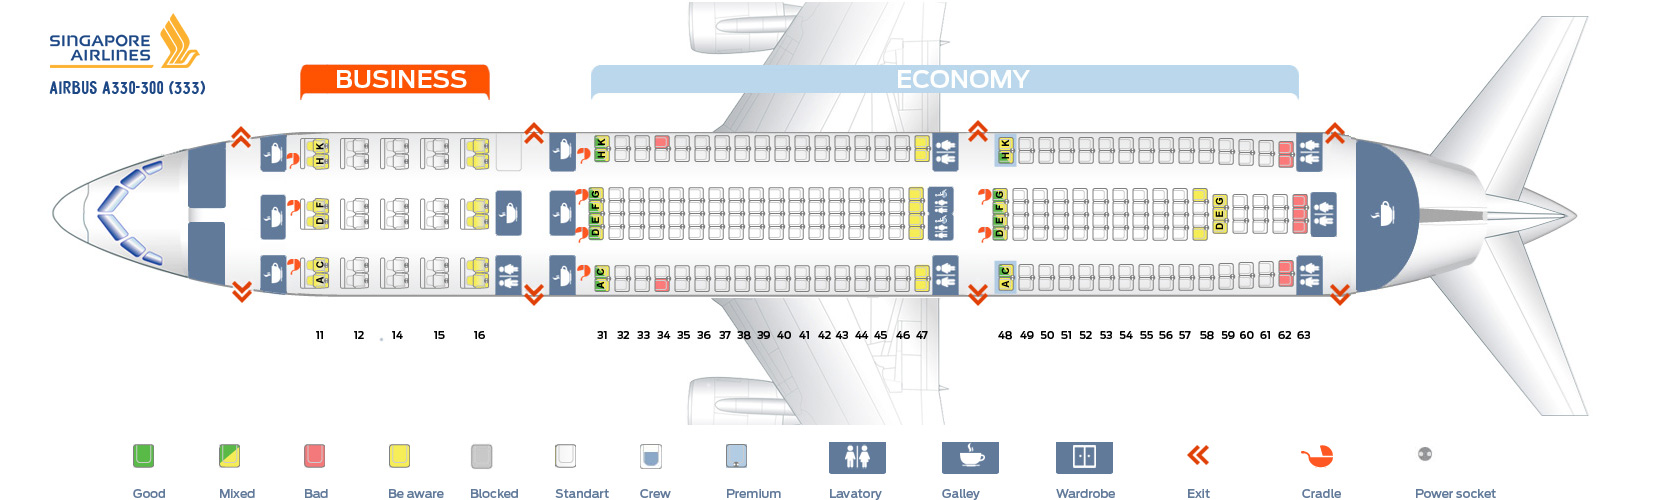 Seat Map Airbus A330-300 Singapore Airlines